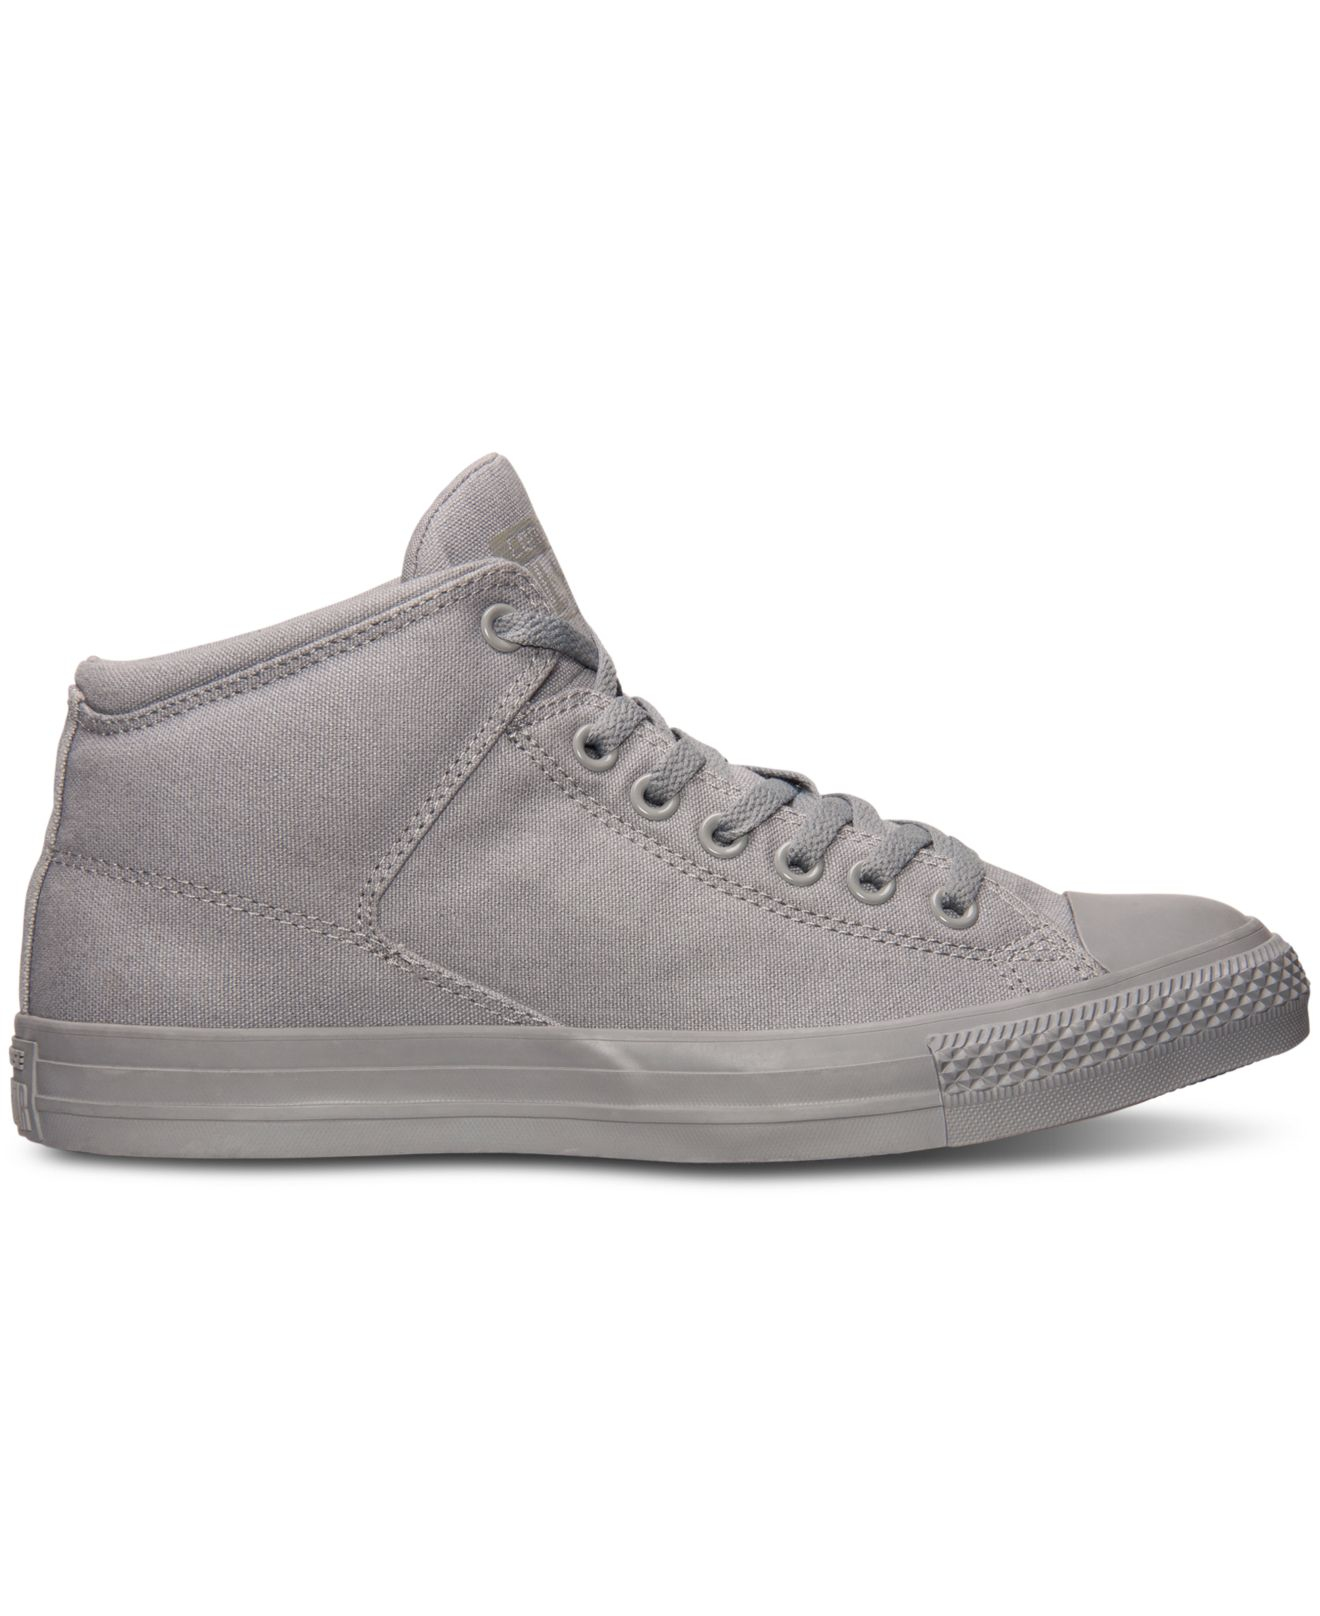 ba288aff4c4e86 Lyst - Converse Men s Chuck Taylor High Street Ox Casual Sneakers ...